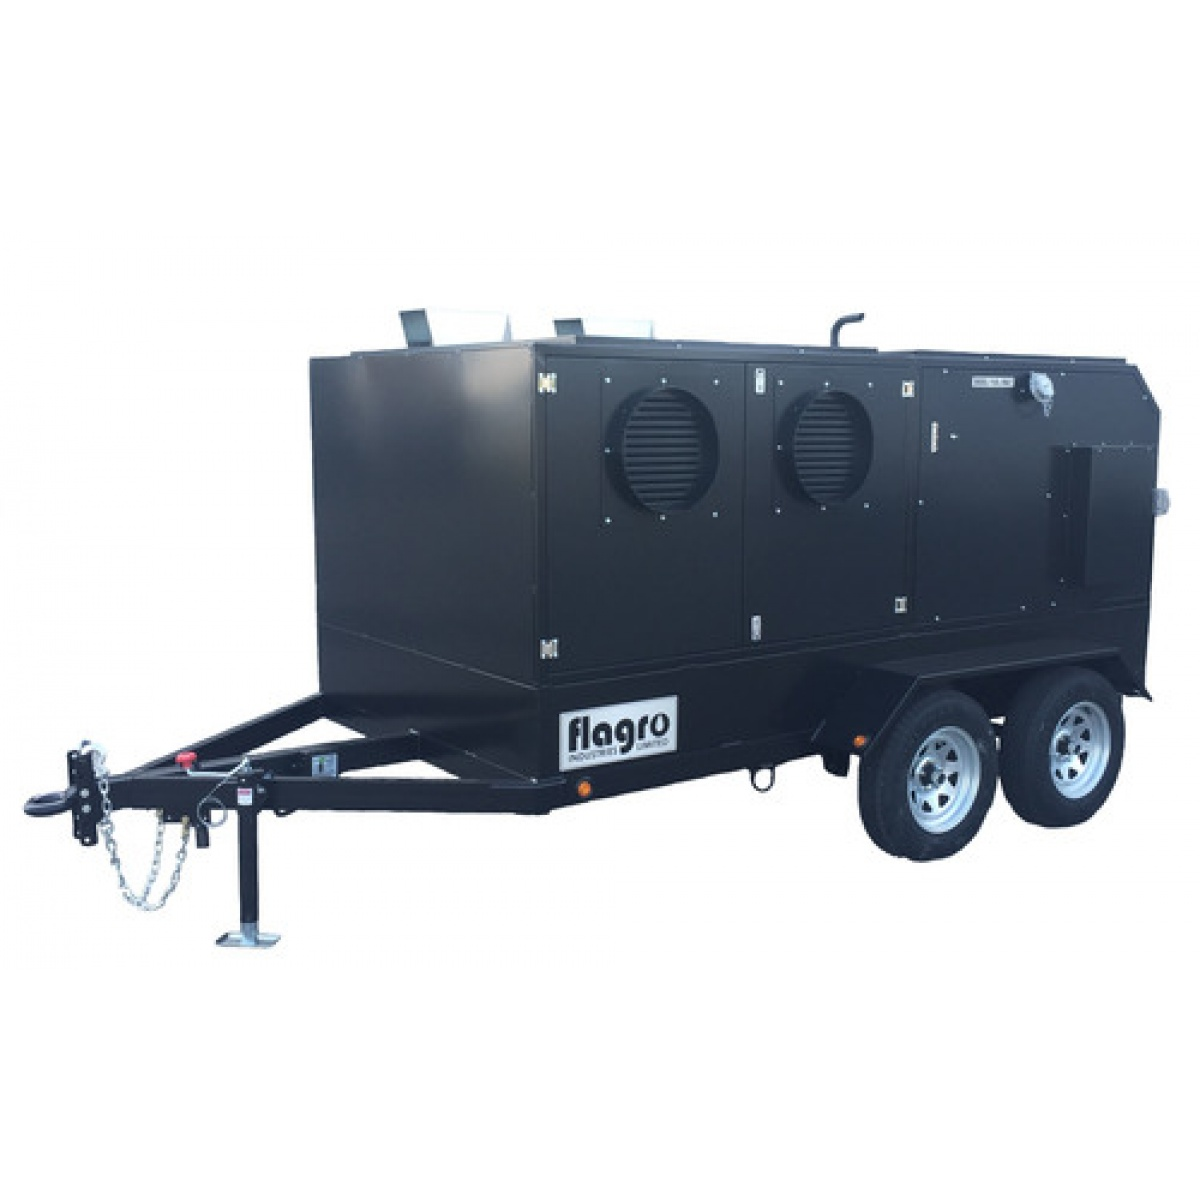 Flagro FLFVO1000TRK Self Contained Heater Trailer